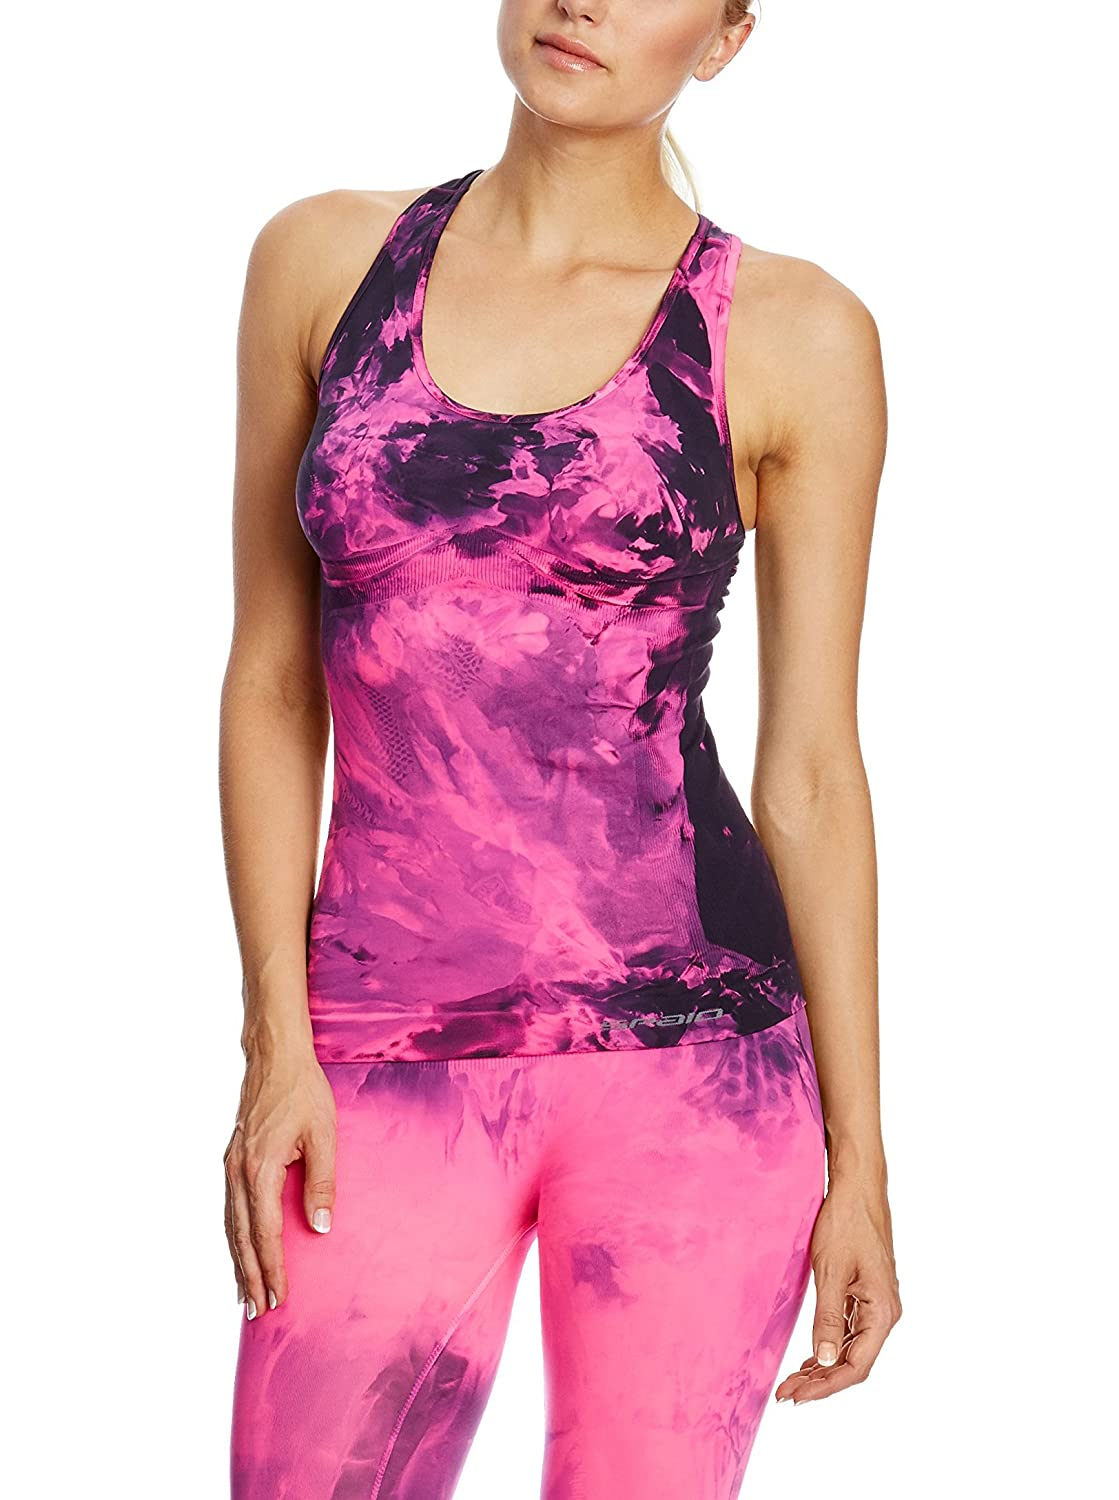 SPAIO  Fintess Camiseta Top de Mujer, Rosa Fluorescente